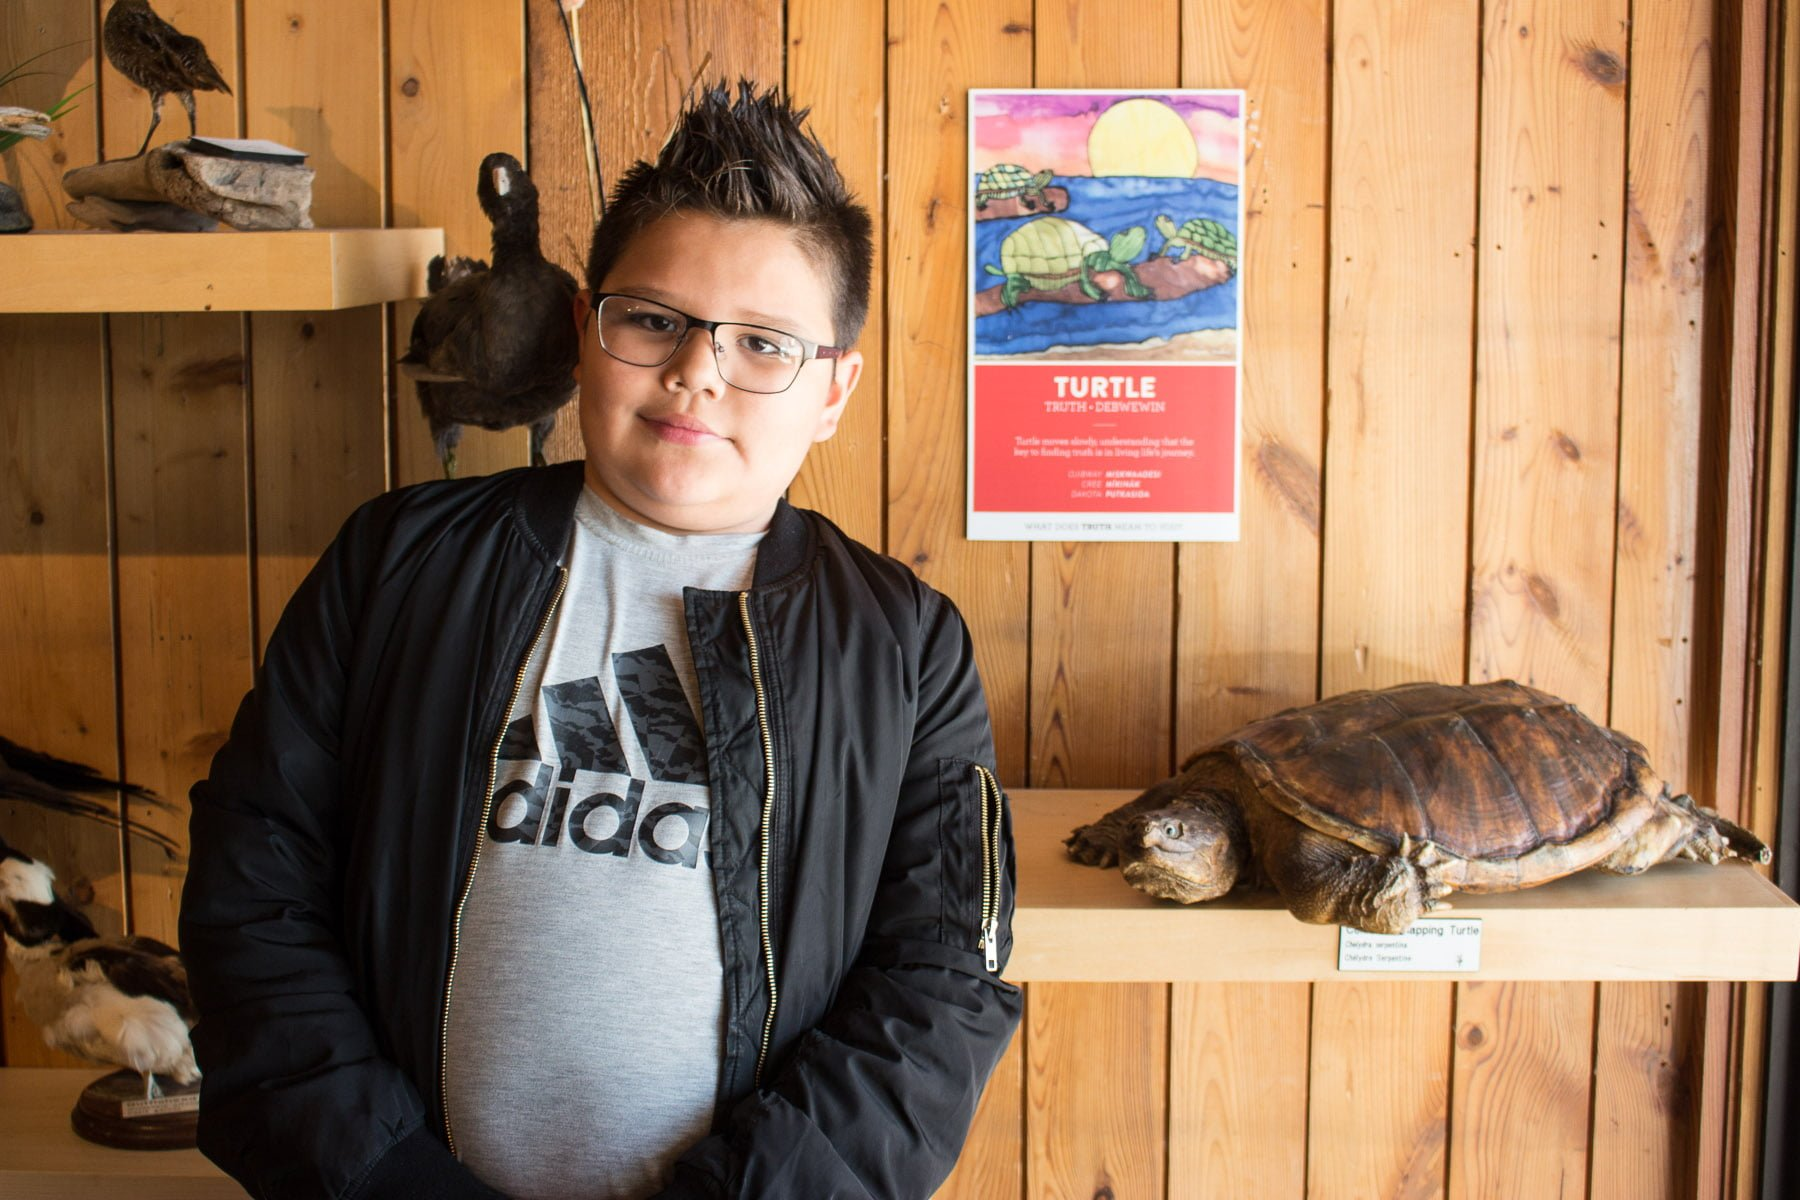 Student poses with his silkscreen of a turtle